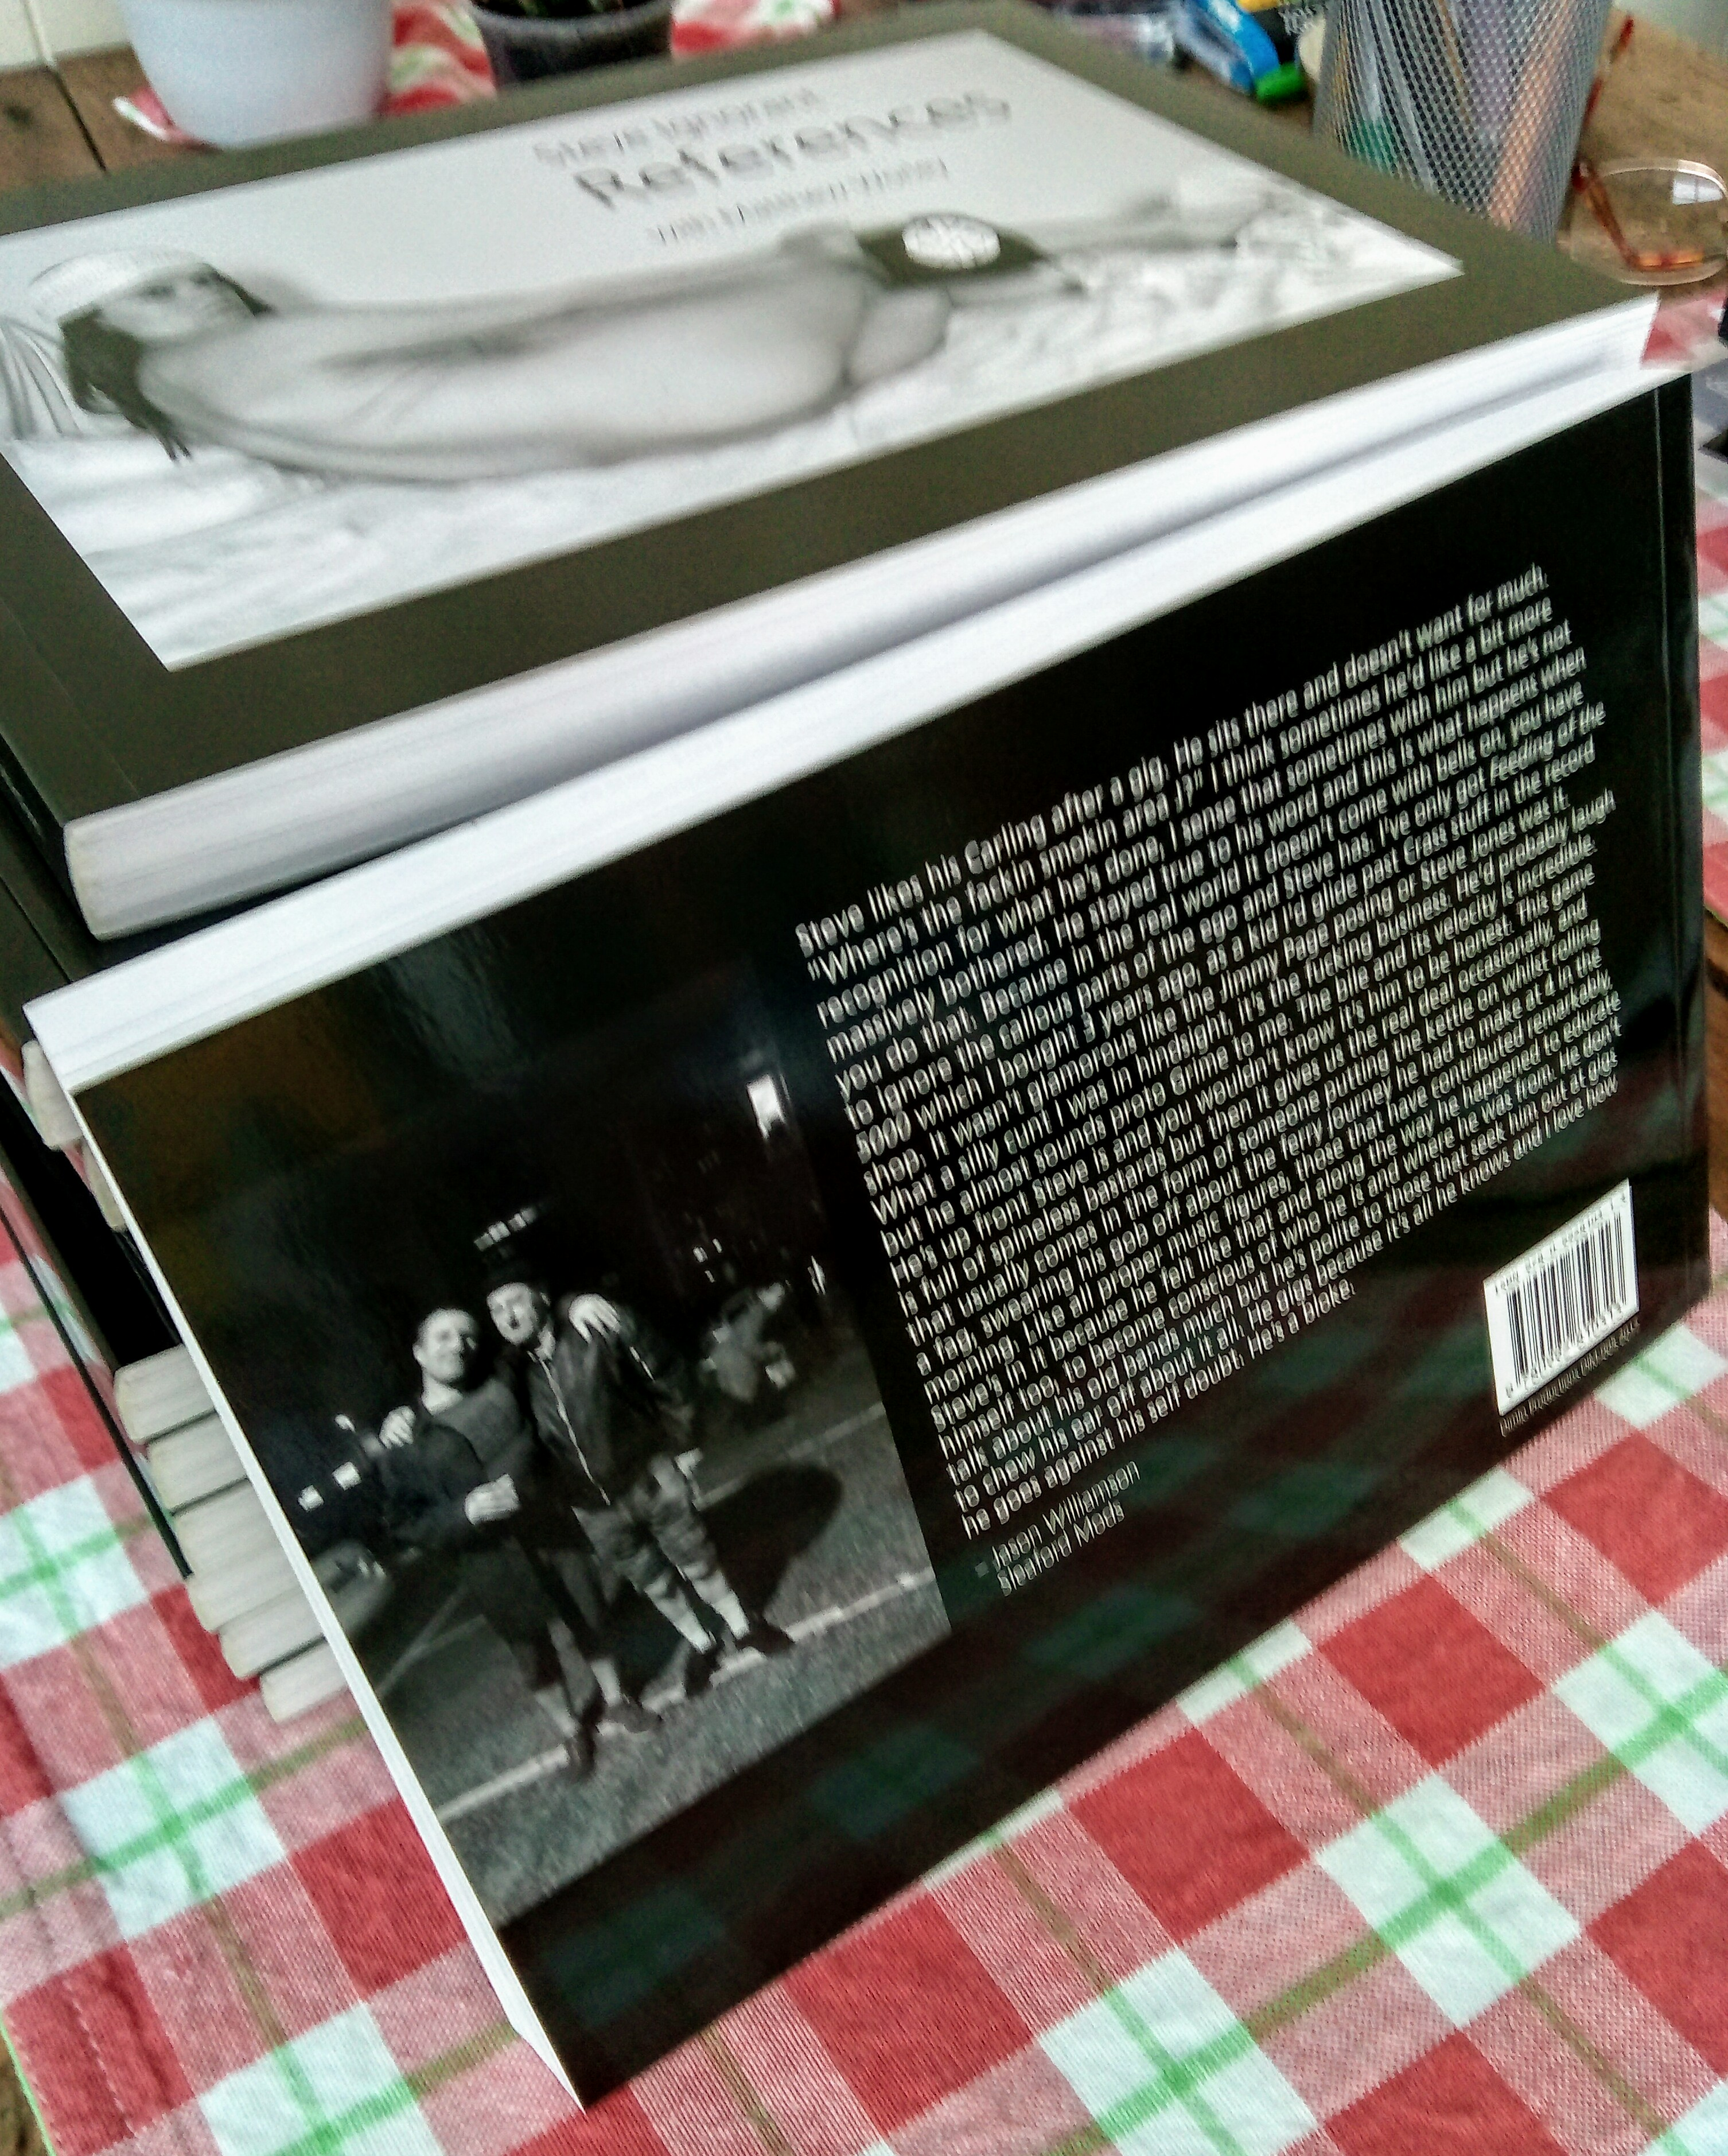 References - Lyrics & Stories by Steve Ignorant with Matthew Worley